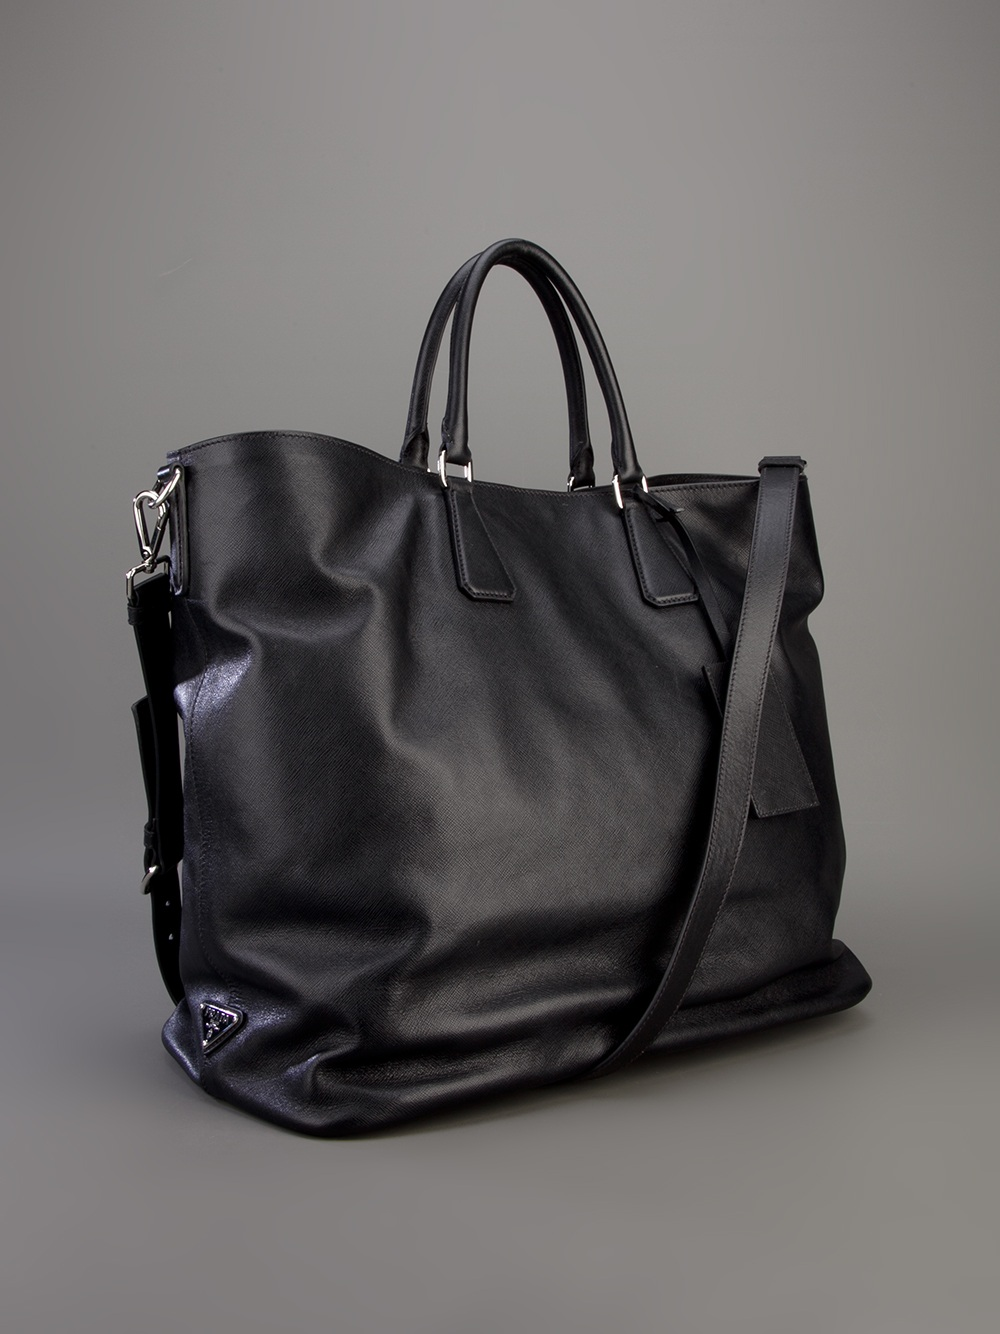 2b54a62ce77d ... discount prada tote bag in black for men lyst d8e9a ff0ce